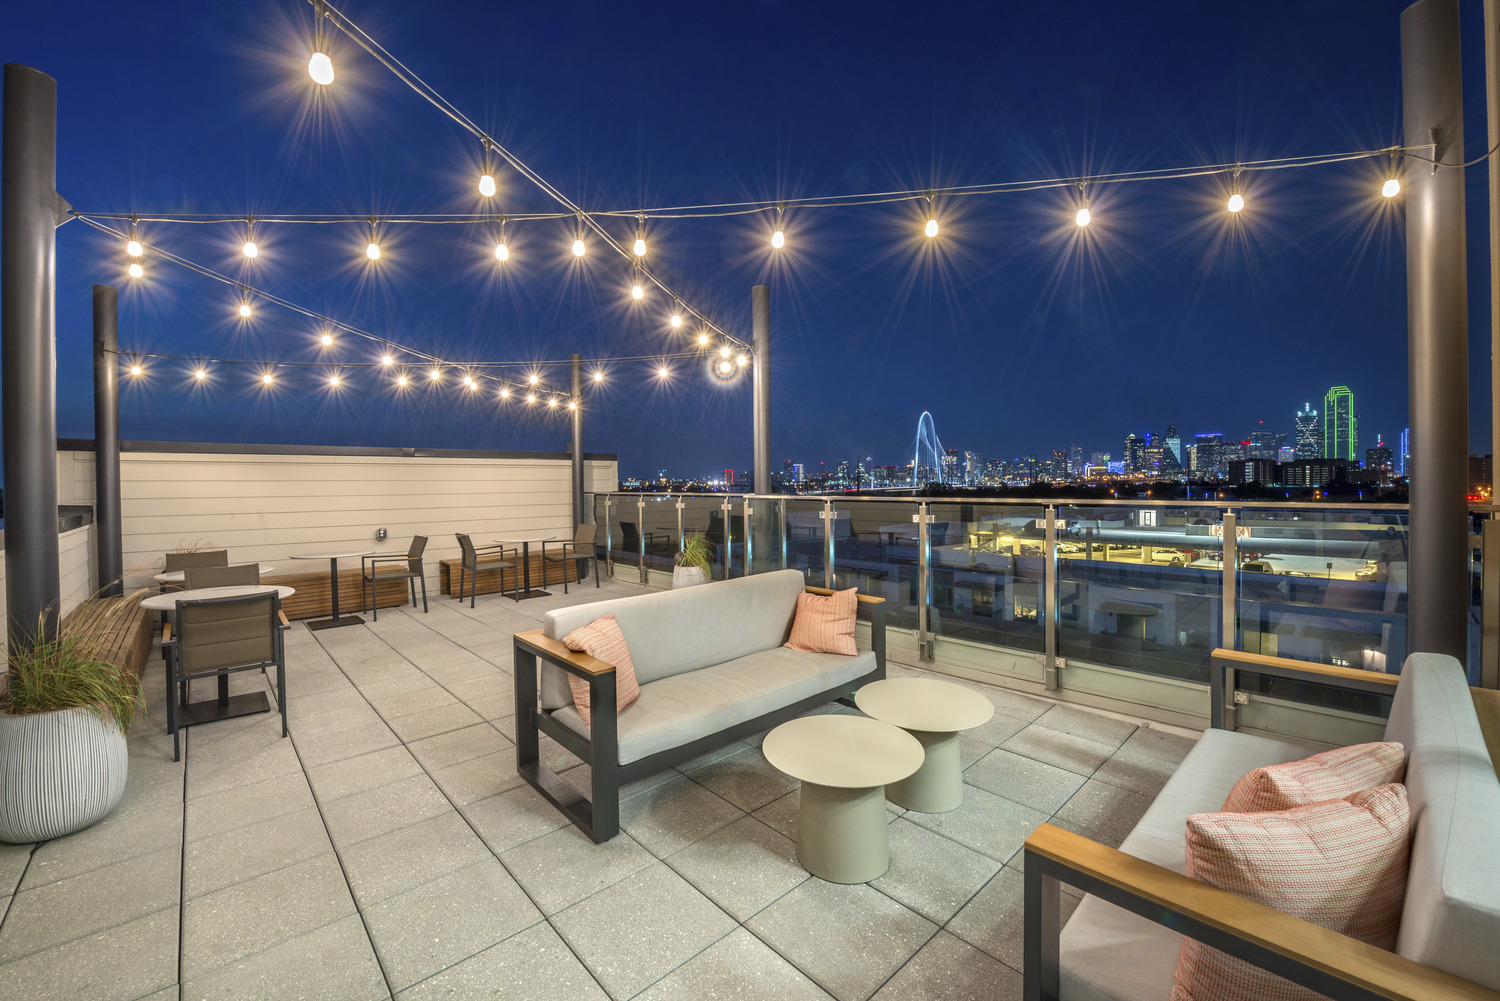 CBG builds The Westerly, a Seven-Story Luxury Community with Rooftop Skydeck in Dallas, TX - Image #8